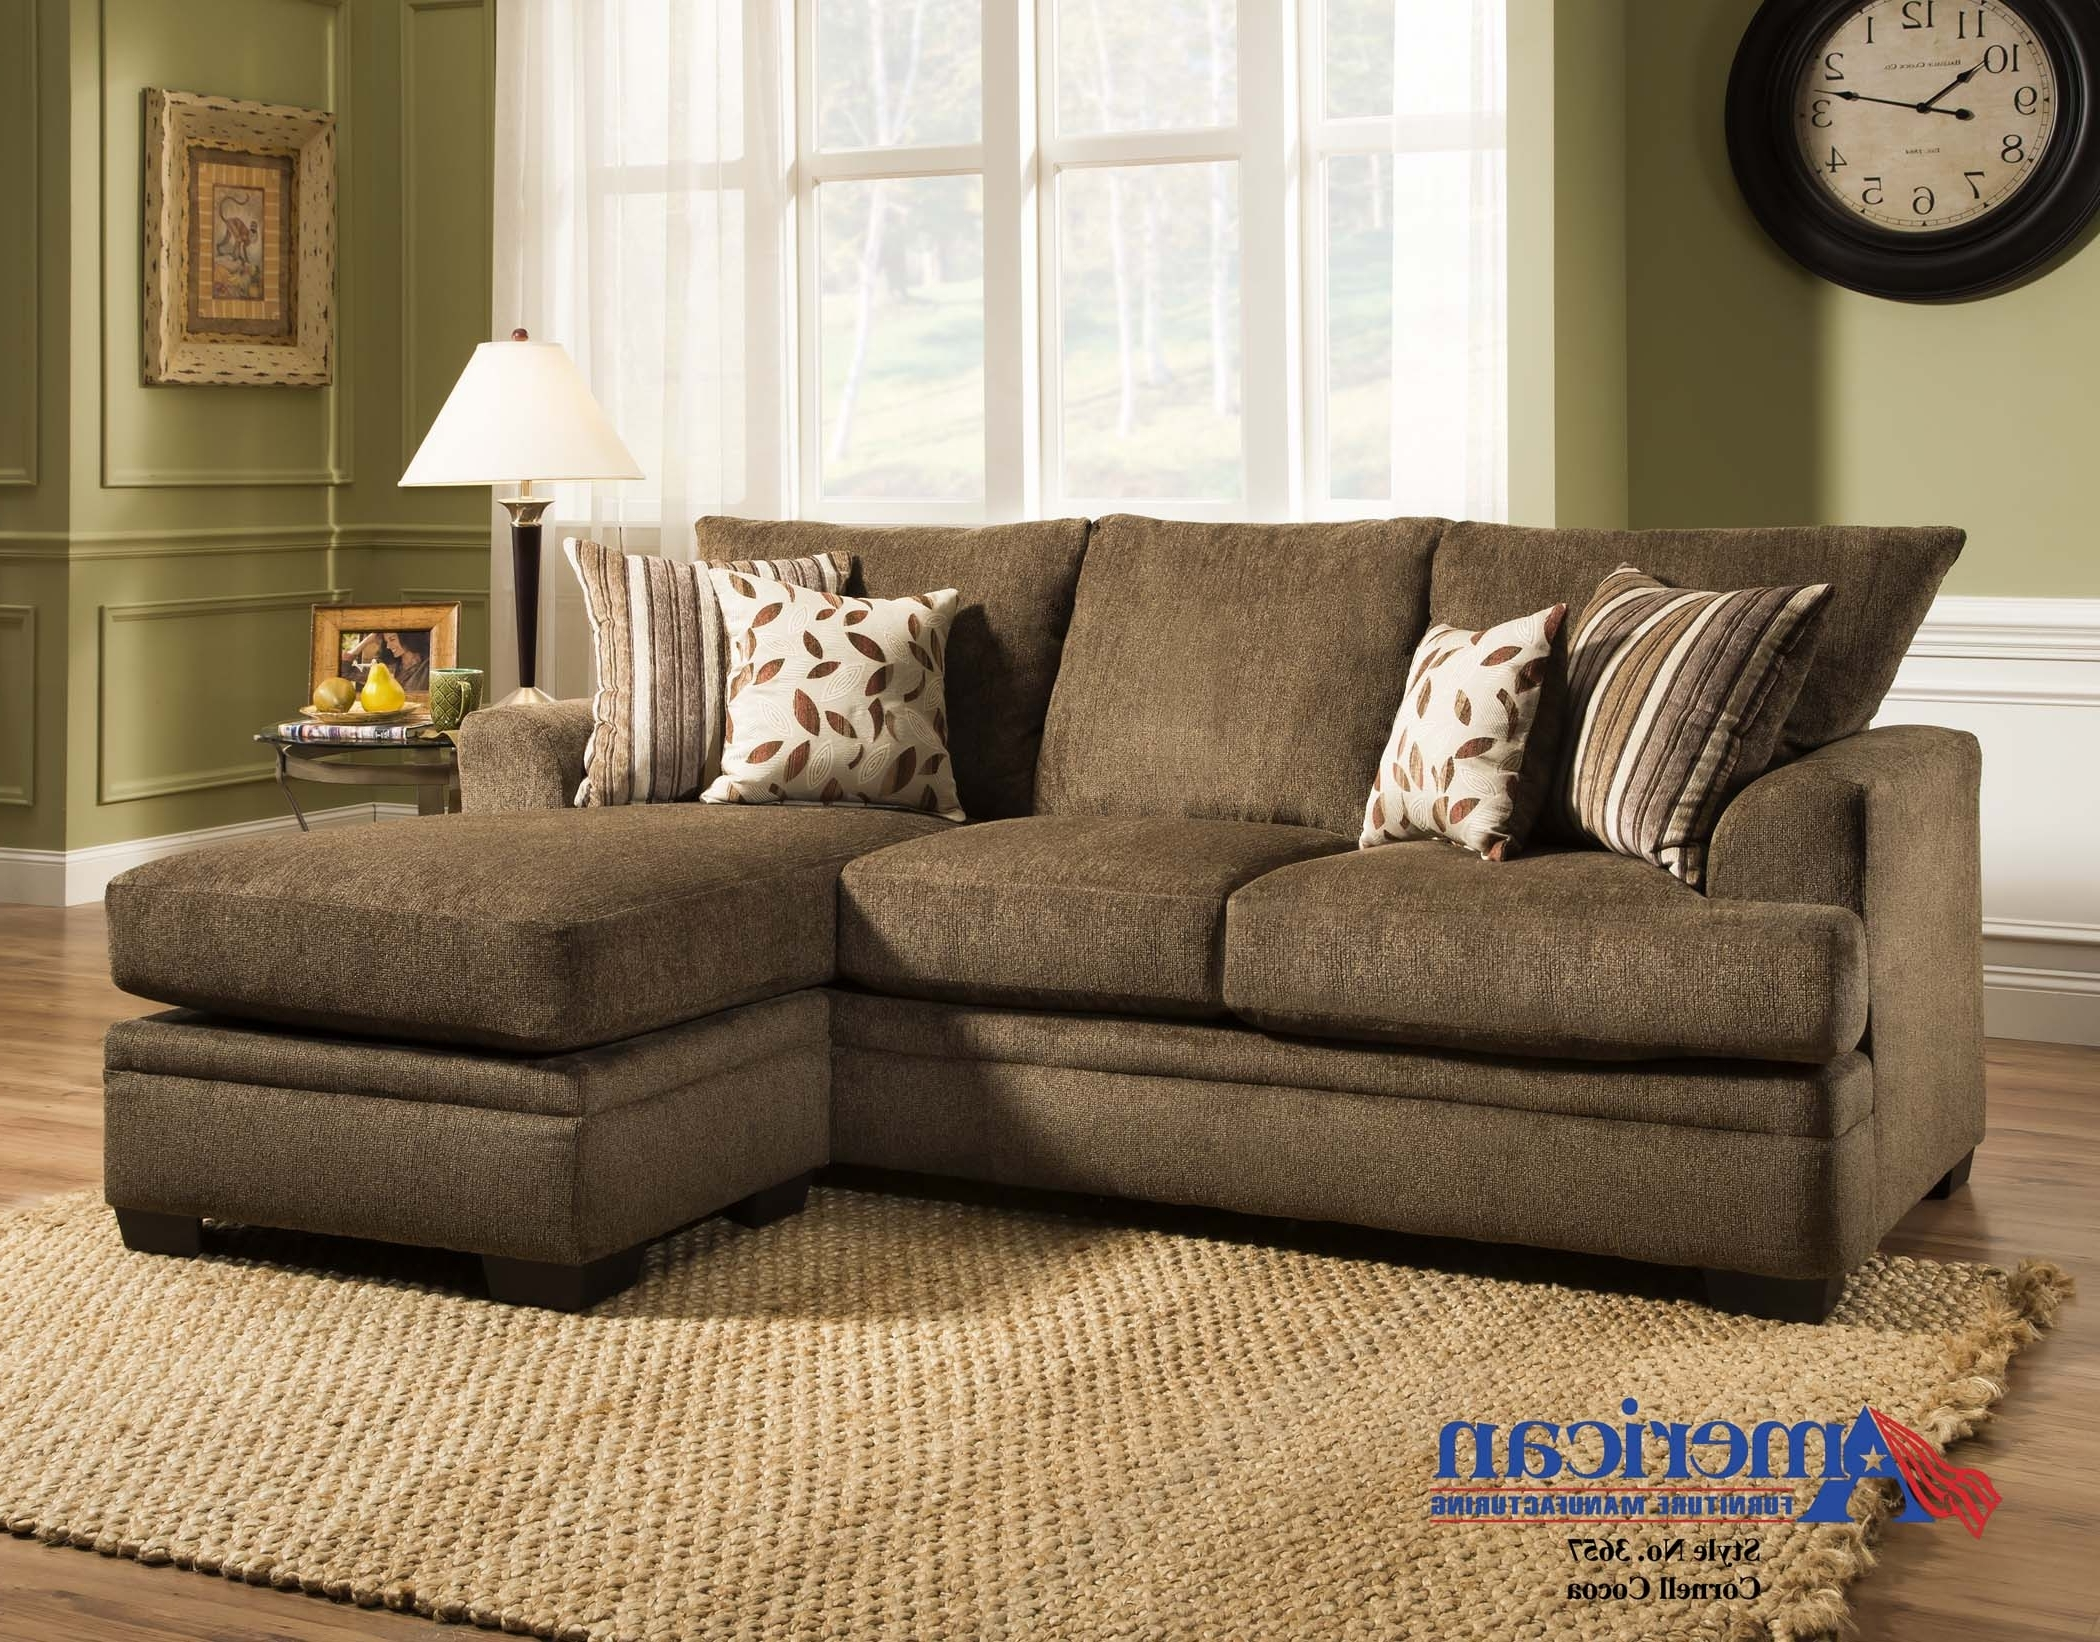 Latest Janesville Wi Sectional Sofas Inside Living Room – Crazy Joe's Best Deal Furniture (View 7 of 15)